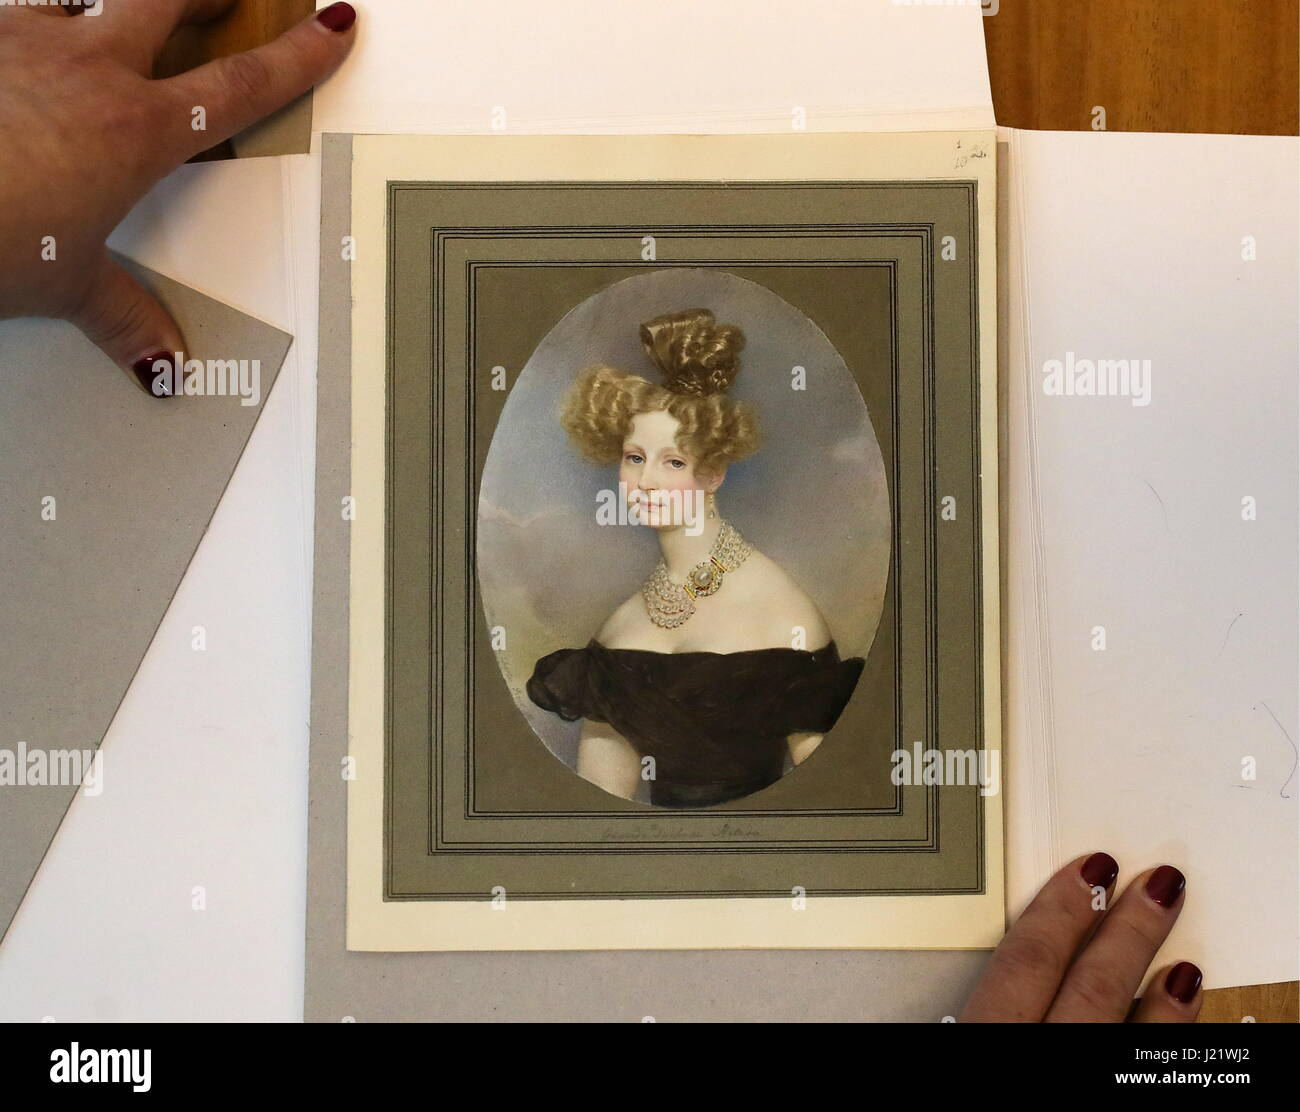 Moscow, Russia. 24th Apr, 2017. Karl Bryullov's portrait of Grand Duchess Elena Pavlovna (1829) on display at - Stock Image